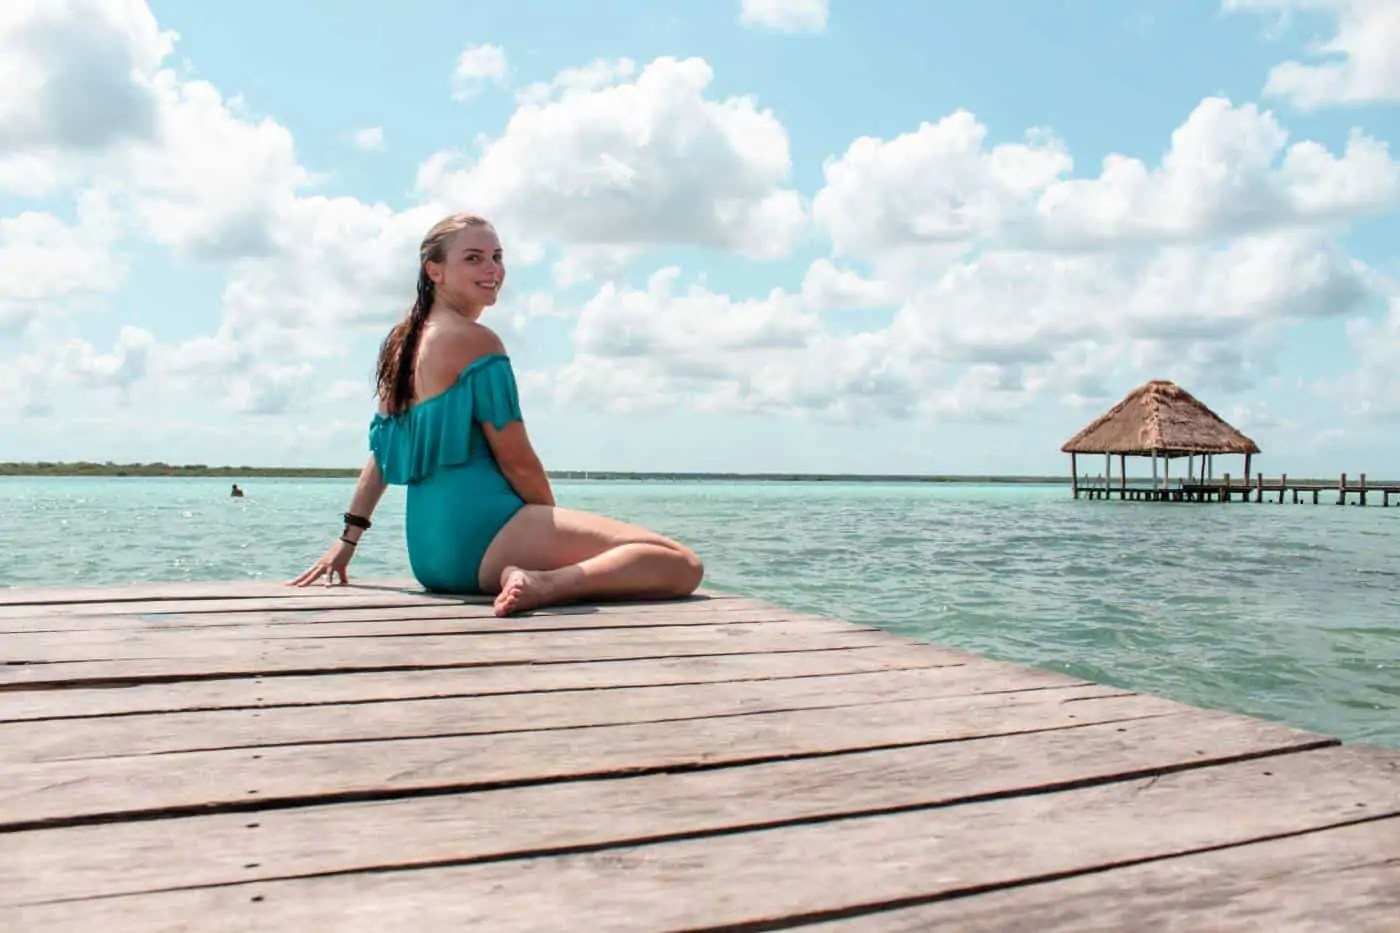 girl in bathing suit sitting on a dock